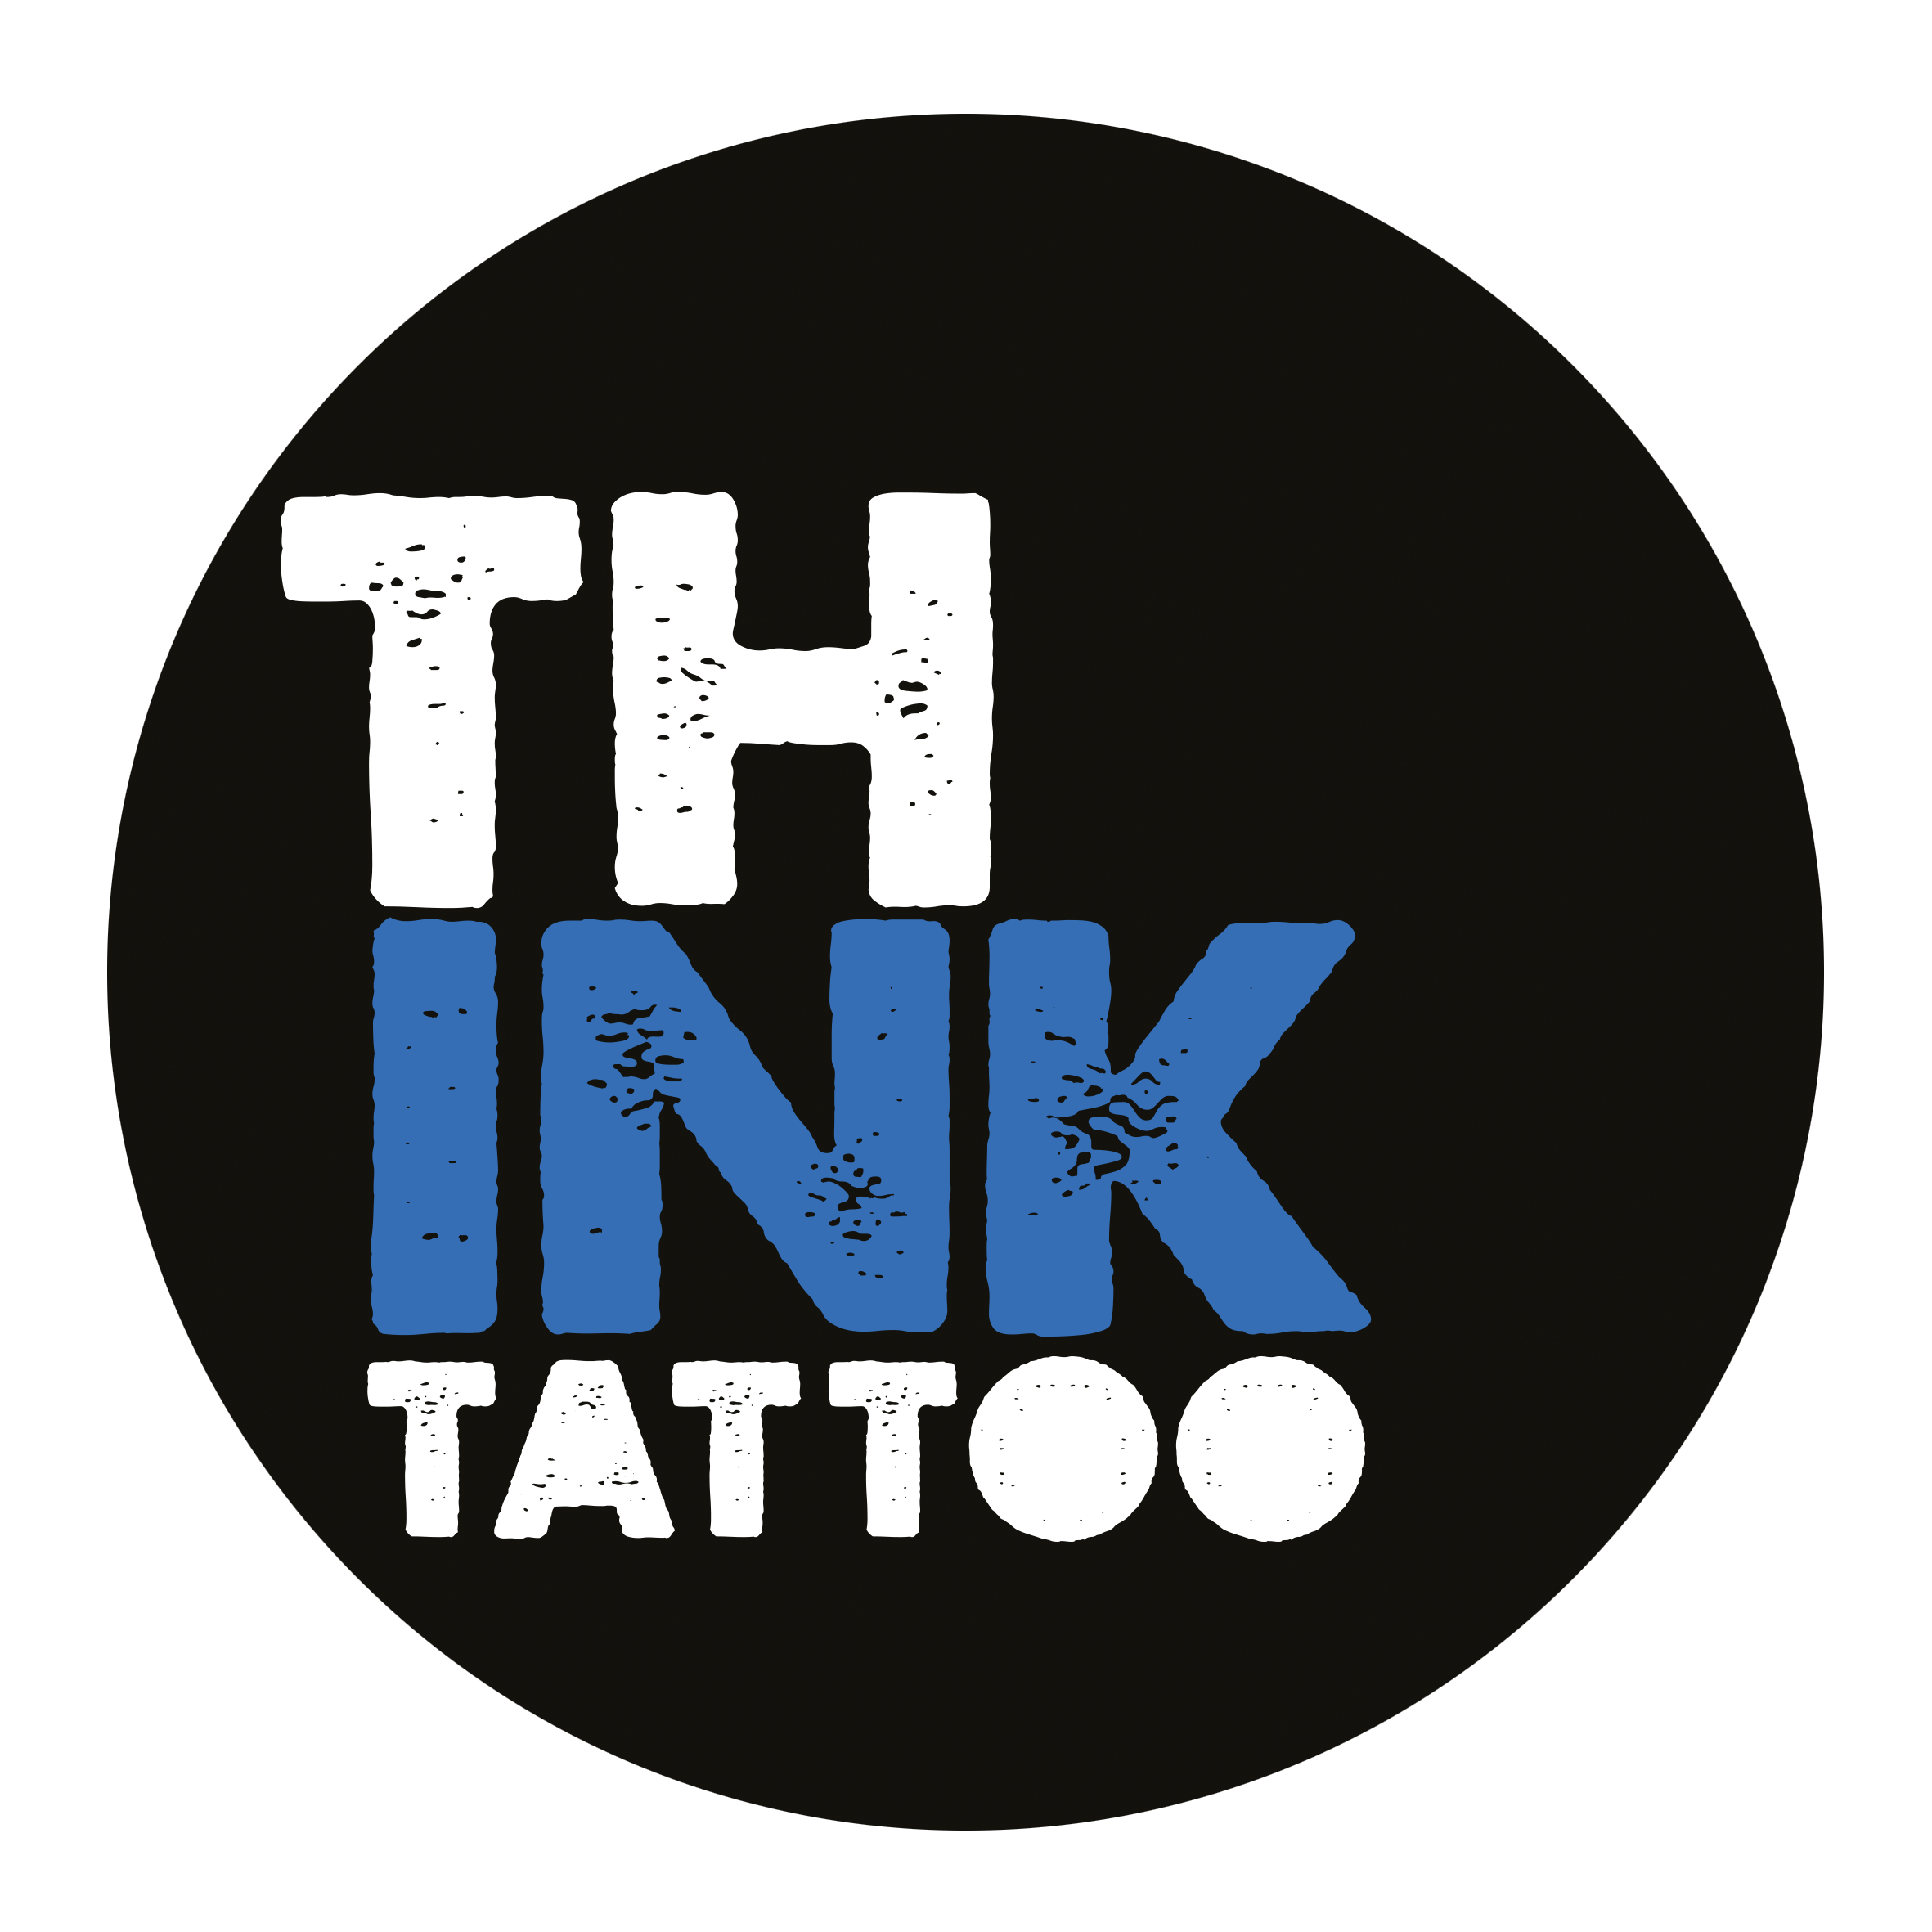 ThInk Tattoo Studio